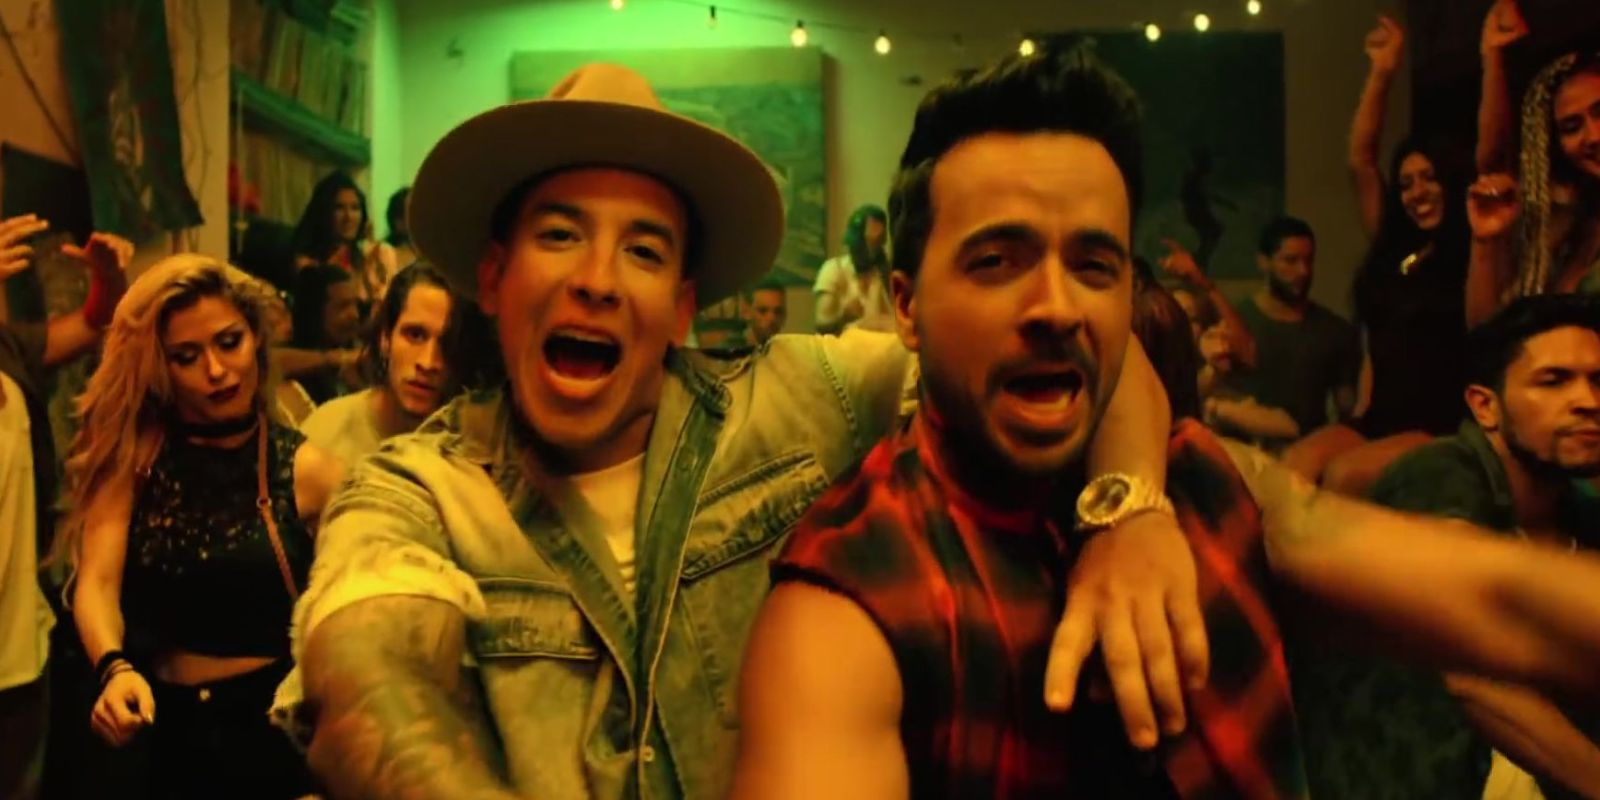 'Despacito's most-watched YouTube video of all-time taken